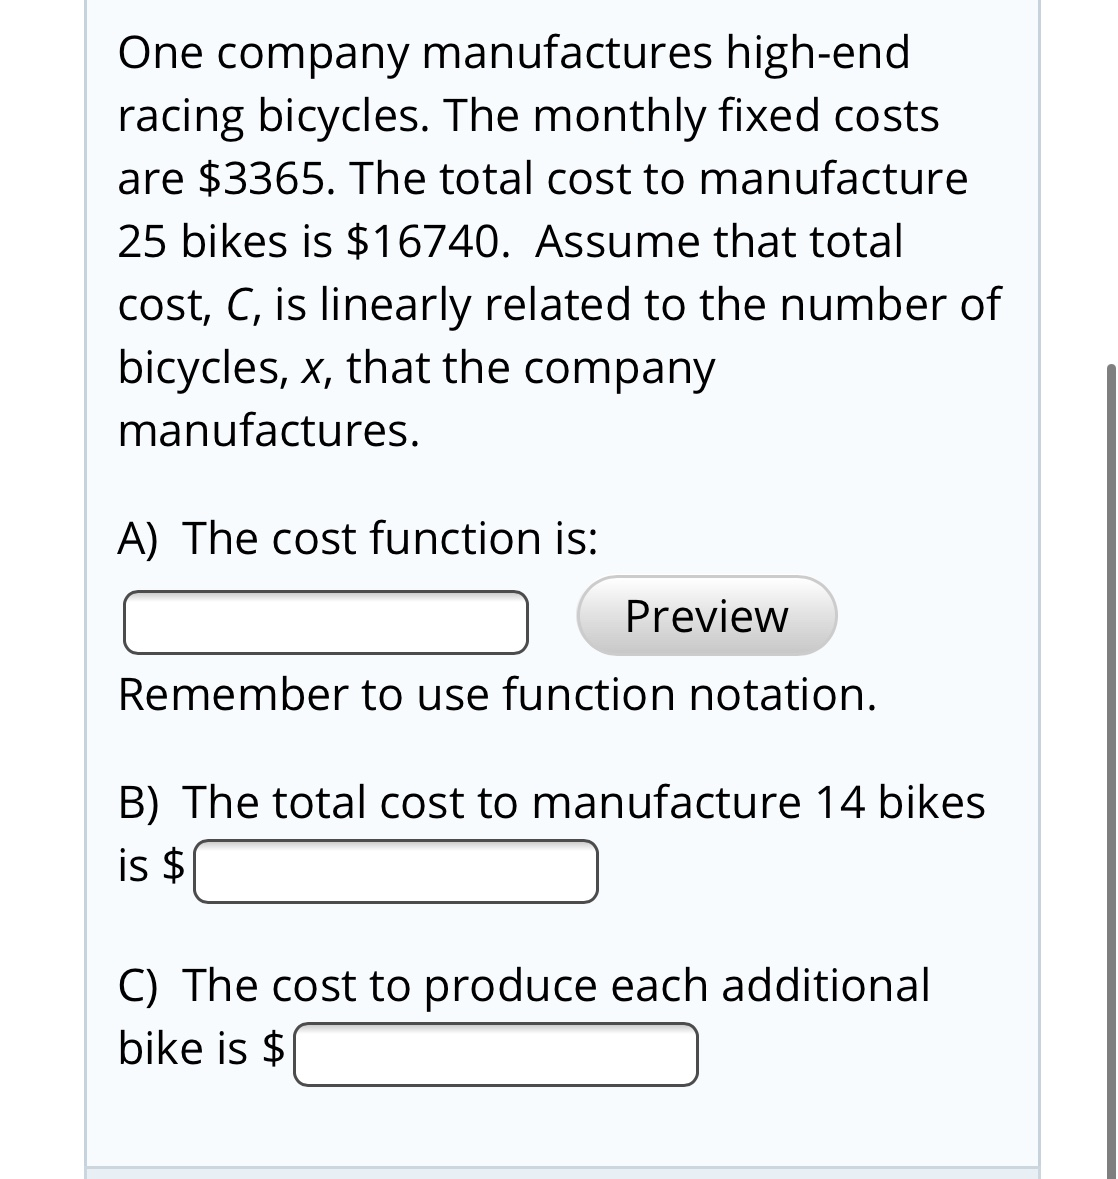 One company manufactures high-end racing bicycles. The monthly fixed costs are $3365. The total cost to manufacture 25 bikes is $16740. Assume that total cost, C, is linearly related to the number of bicycles, x, that the company manufactures. A) The cost function is: Preview Remember to use function notation. B) The total cost to manufacture 14 bikes is $ C) The cost to produce each additional bike is $